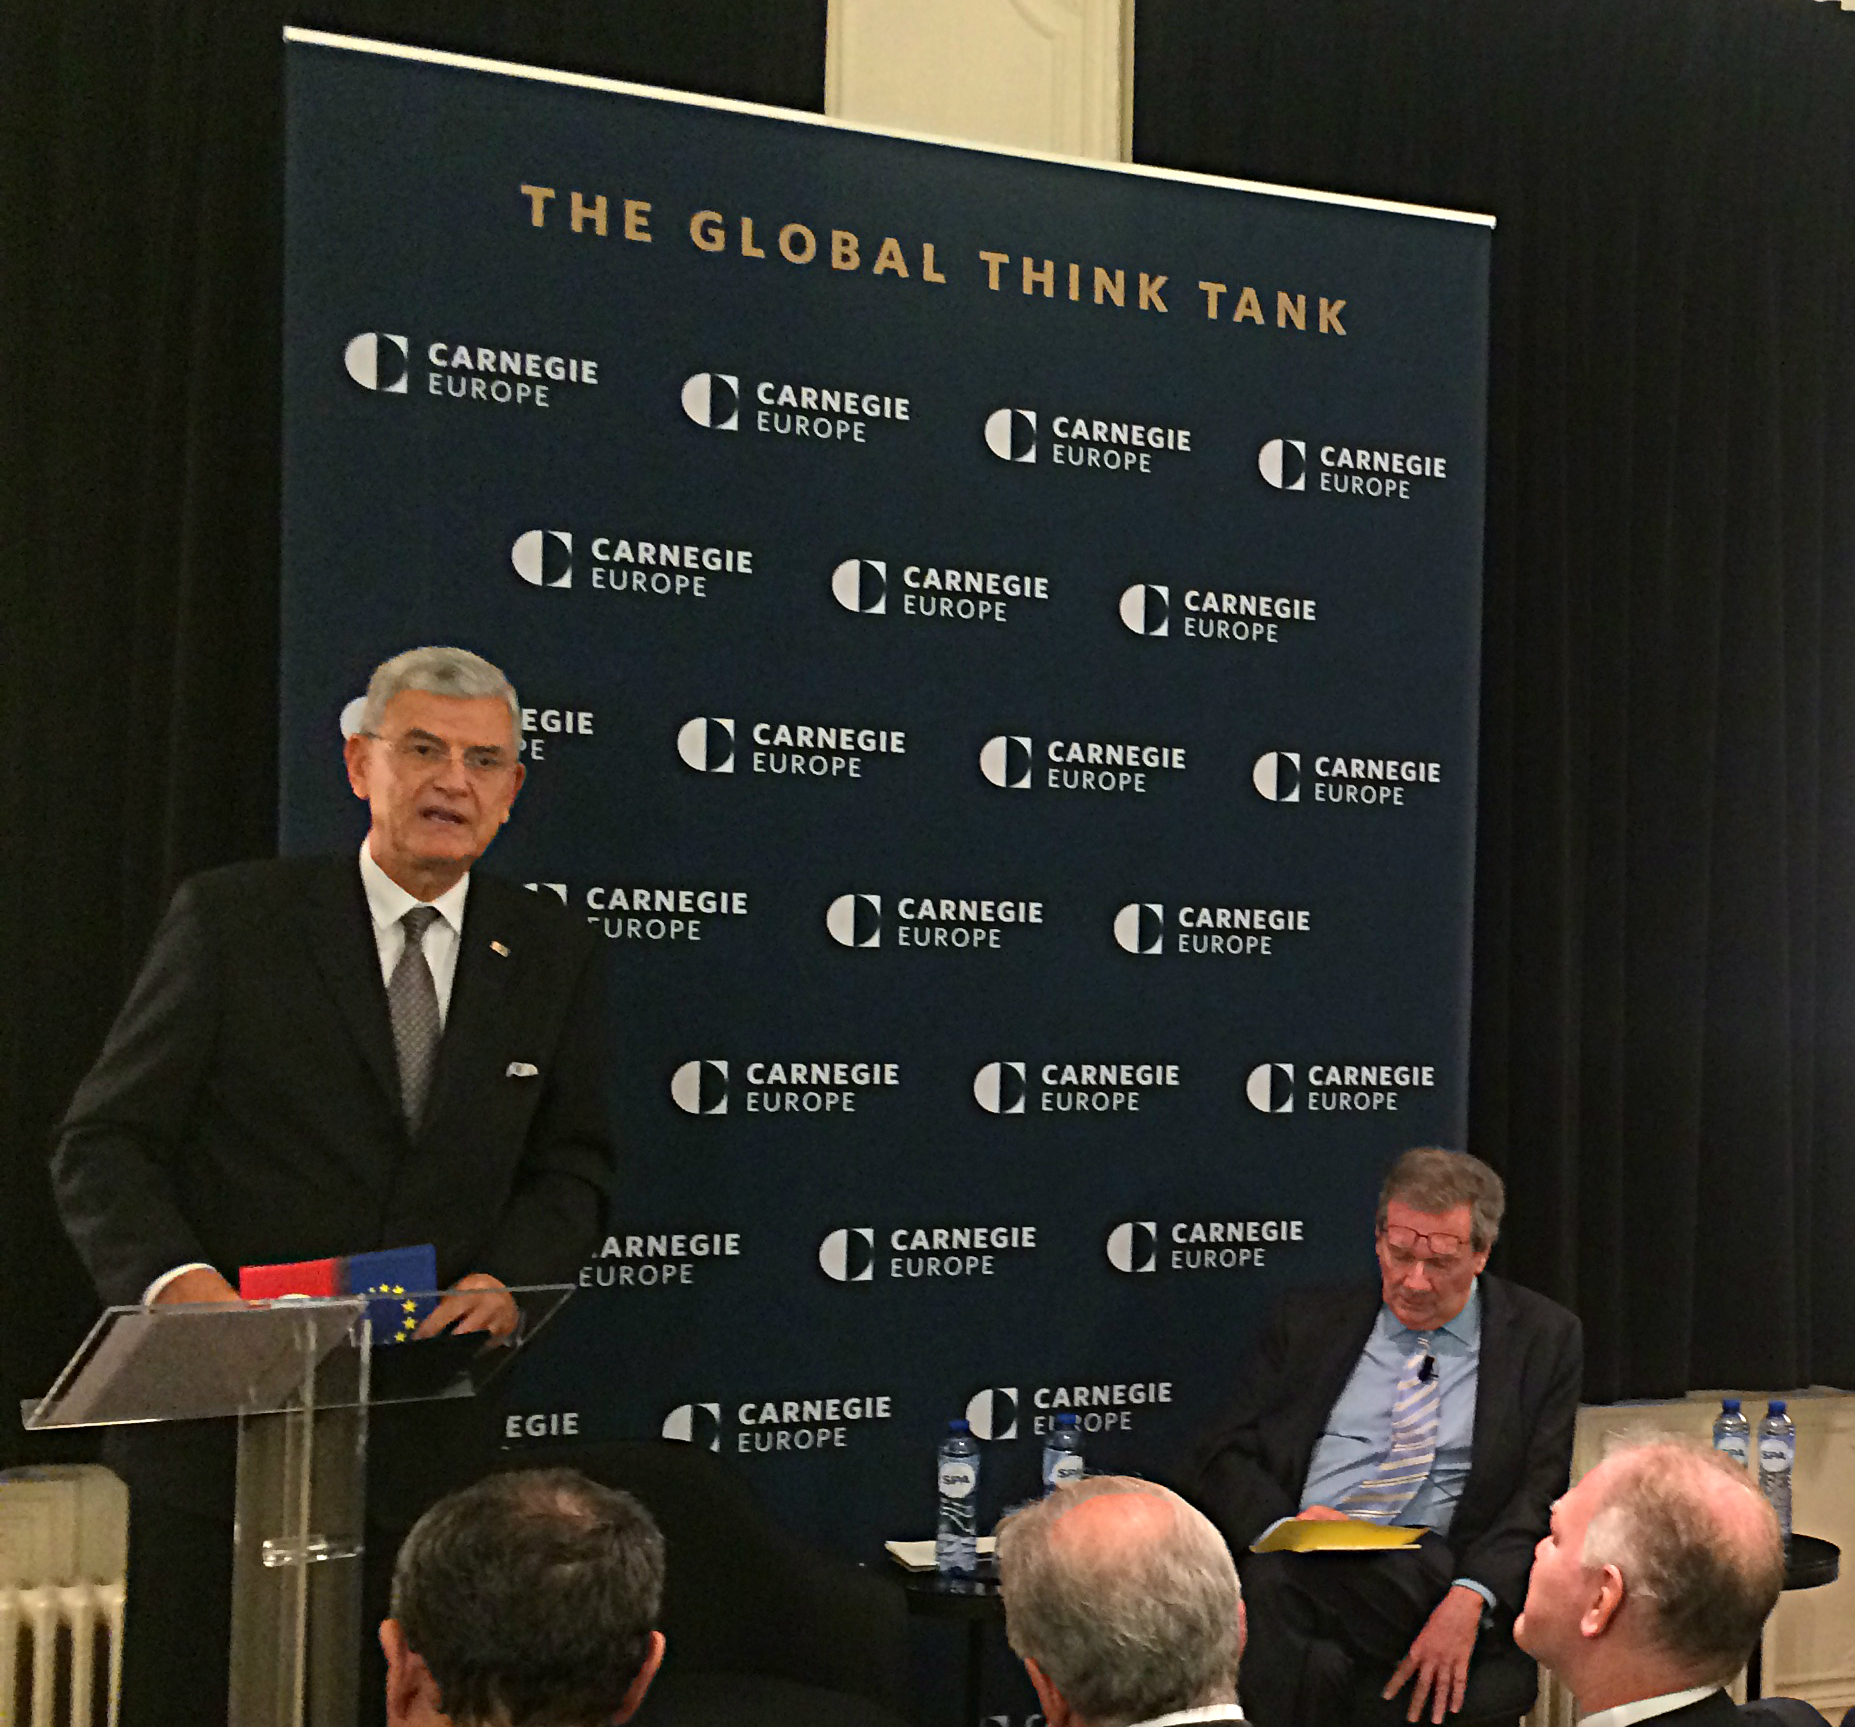 Volkan Bozkir is very passionate about Turkey's European path.